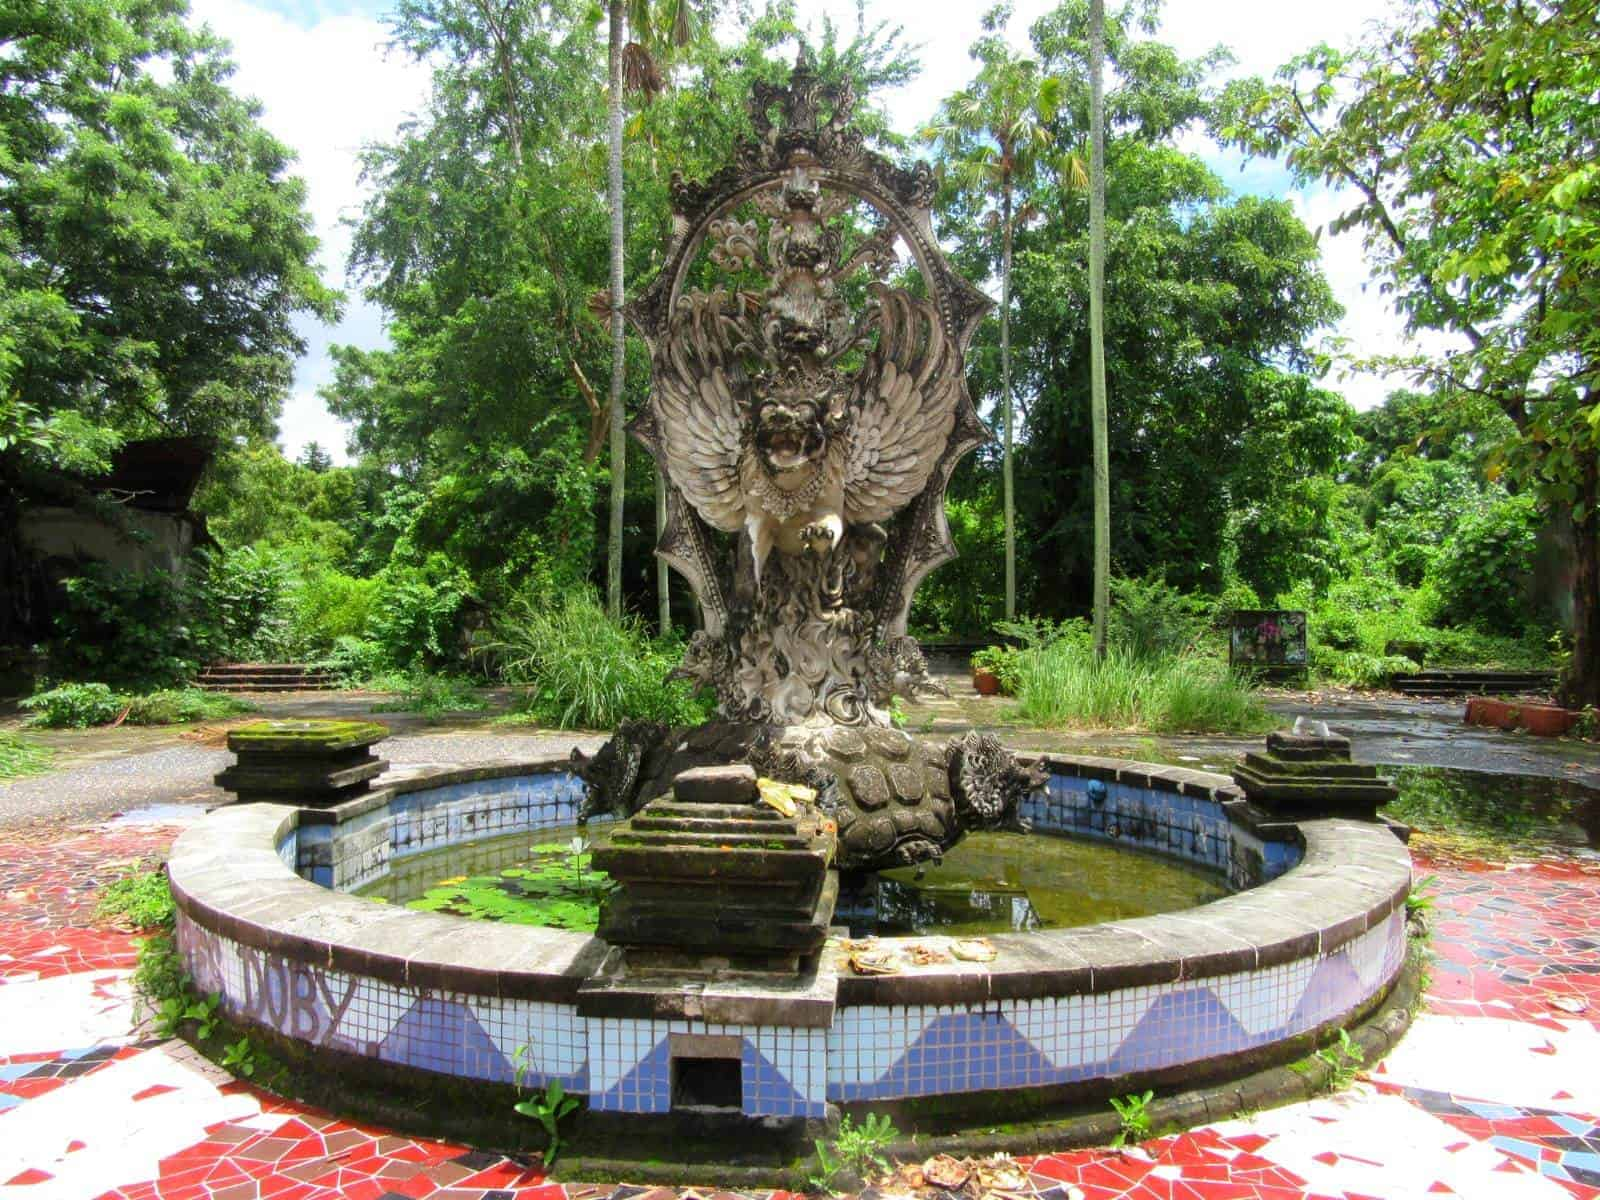 A Grotesque Statue Fountain at Taman Festival, Abandoned Theme Park, Bali